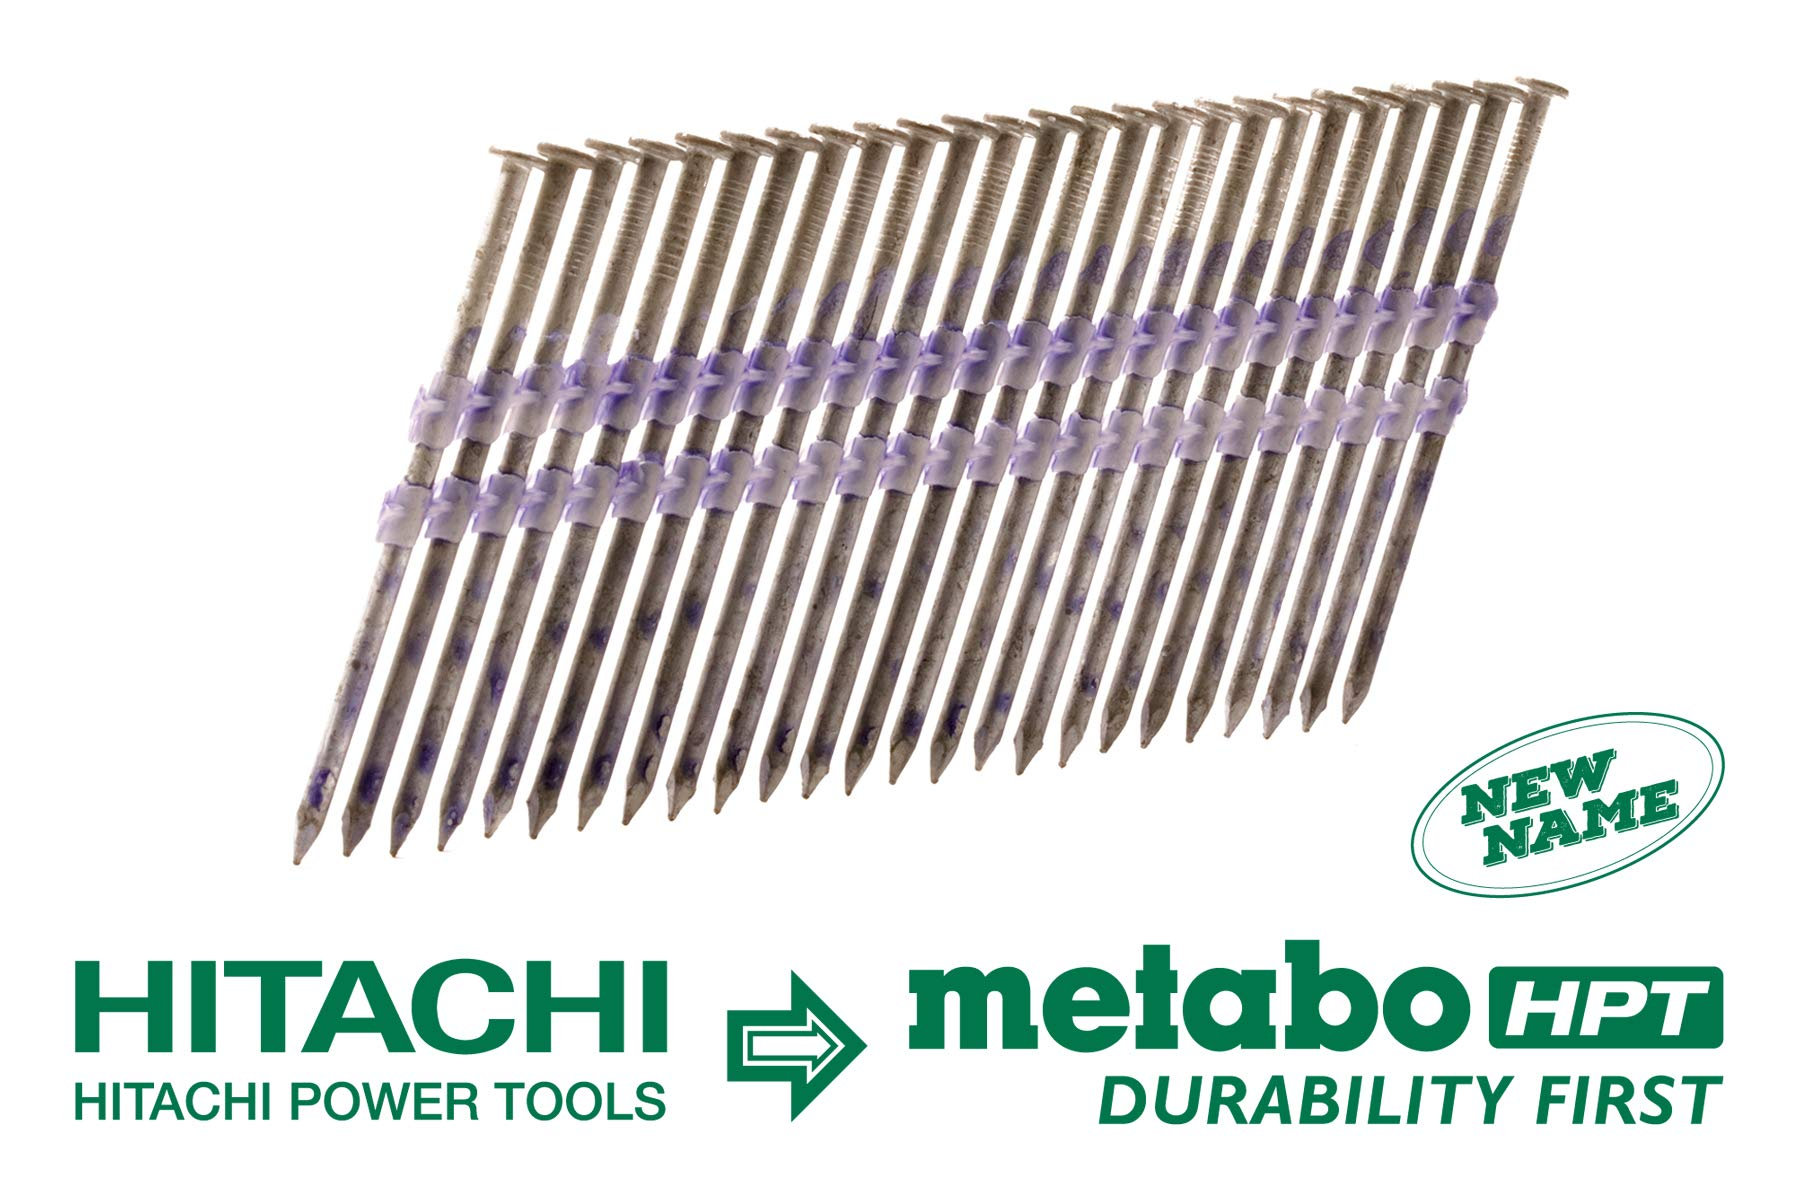 Metabo HPT 20163SHPT Galvanized Collation